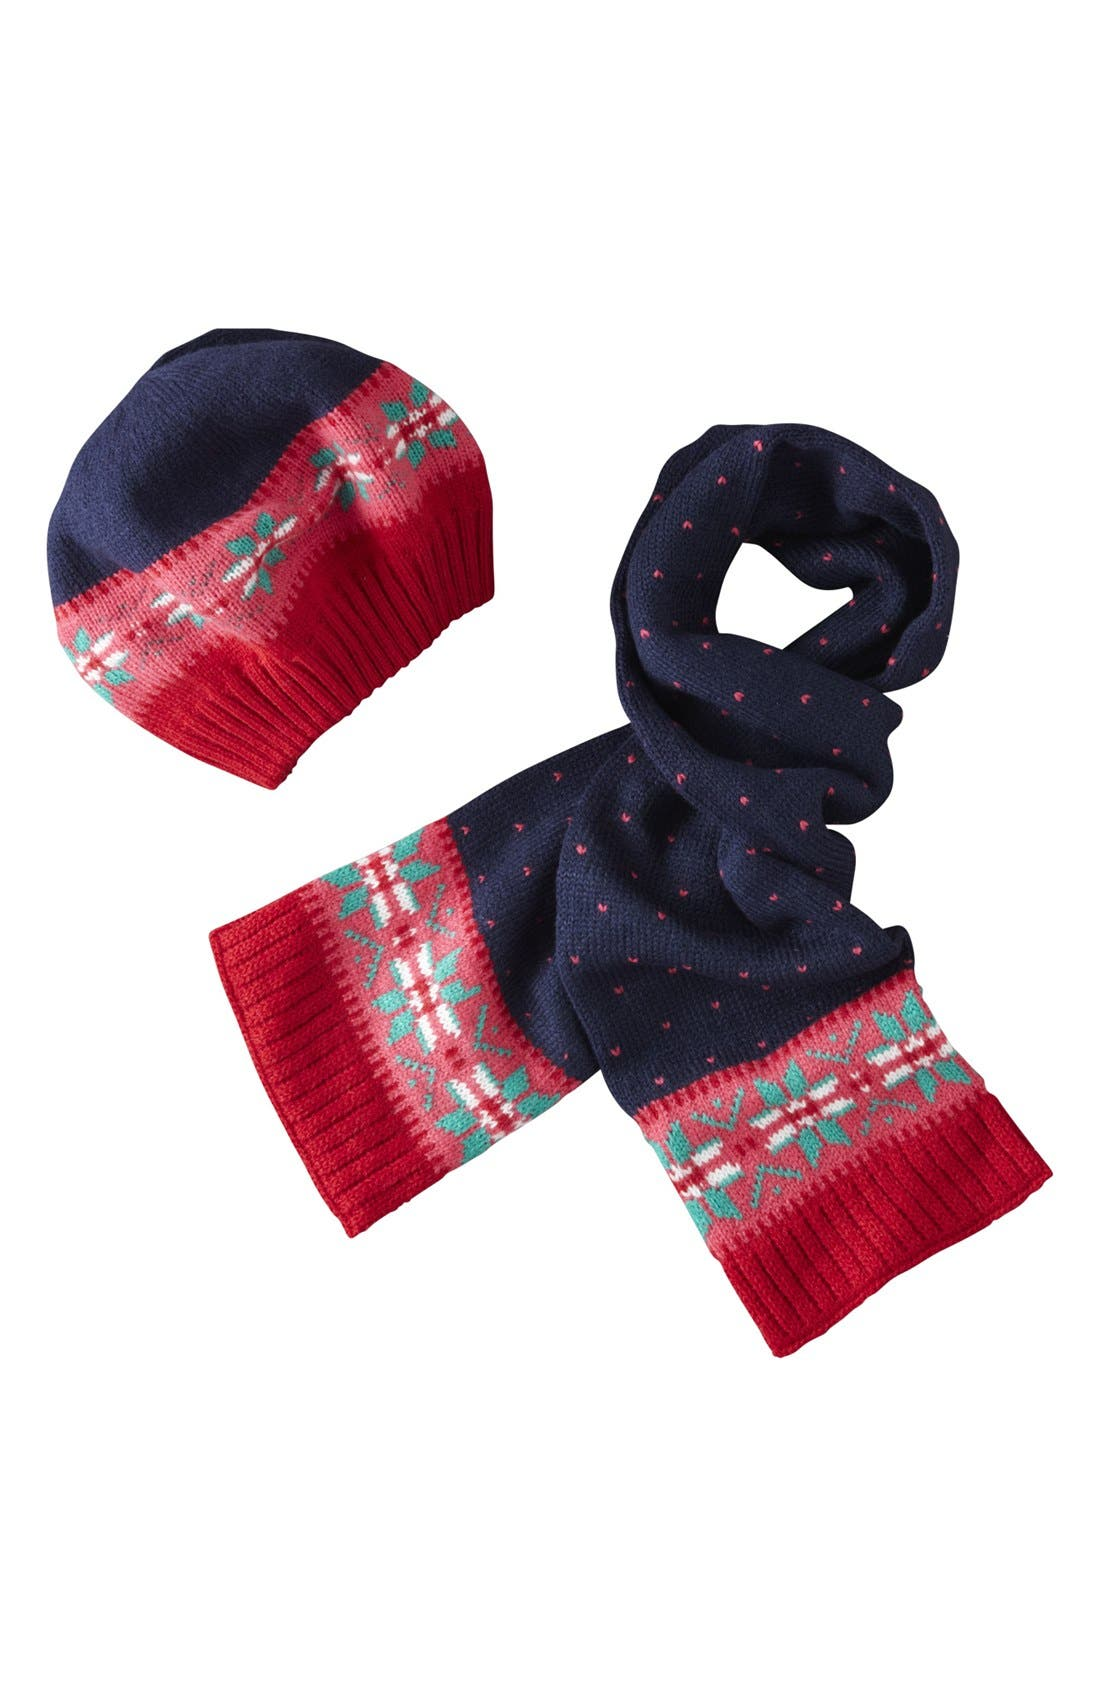 Alternate Image 1 Selected - Mini Boden Fair Isle Beret & Scarf (Toddler Girls, Little Girls & Big Girls)